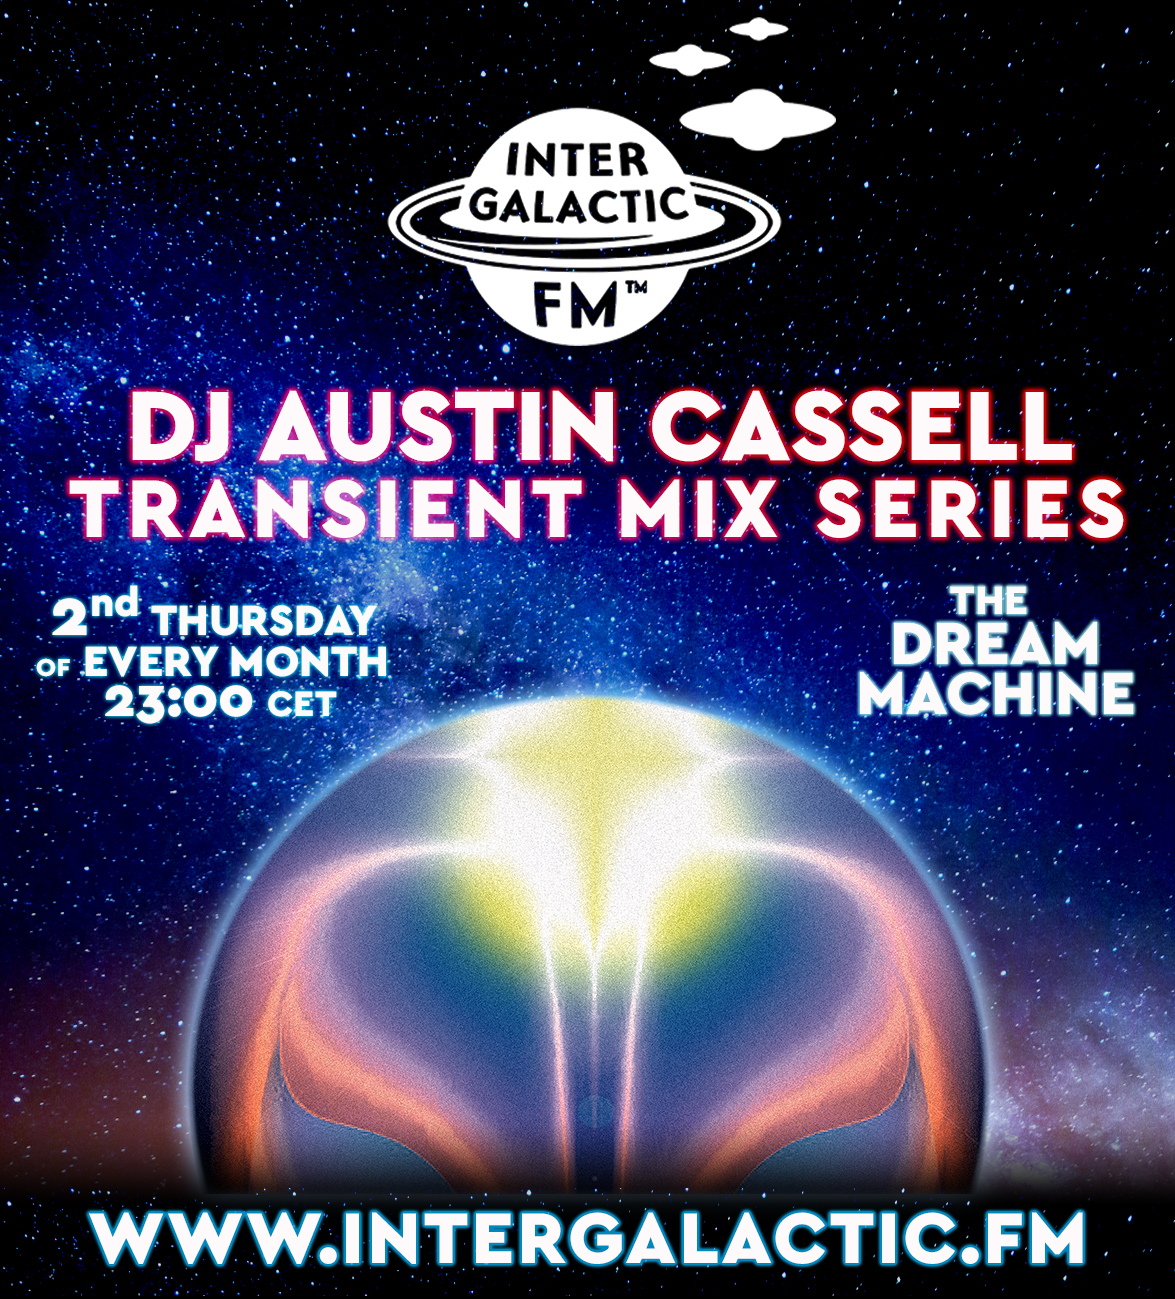 Transient Mix Series 06 - tonight 23:00 CIT on TDM